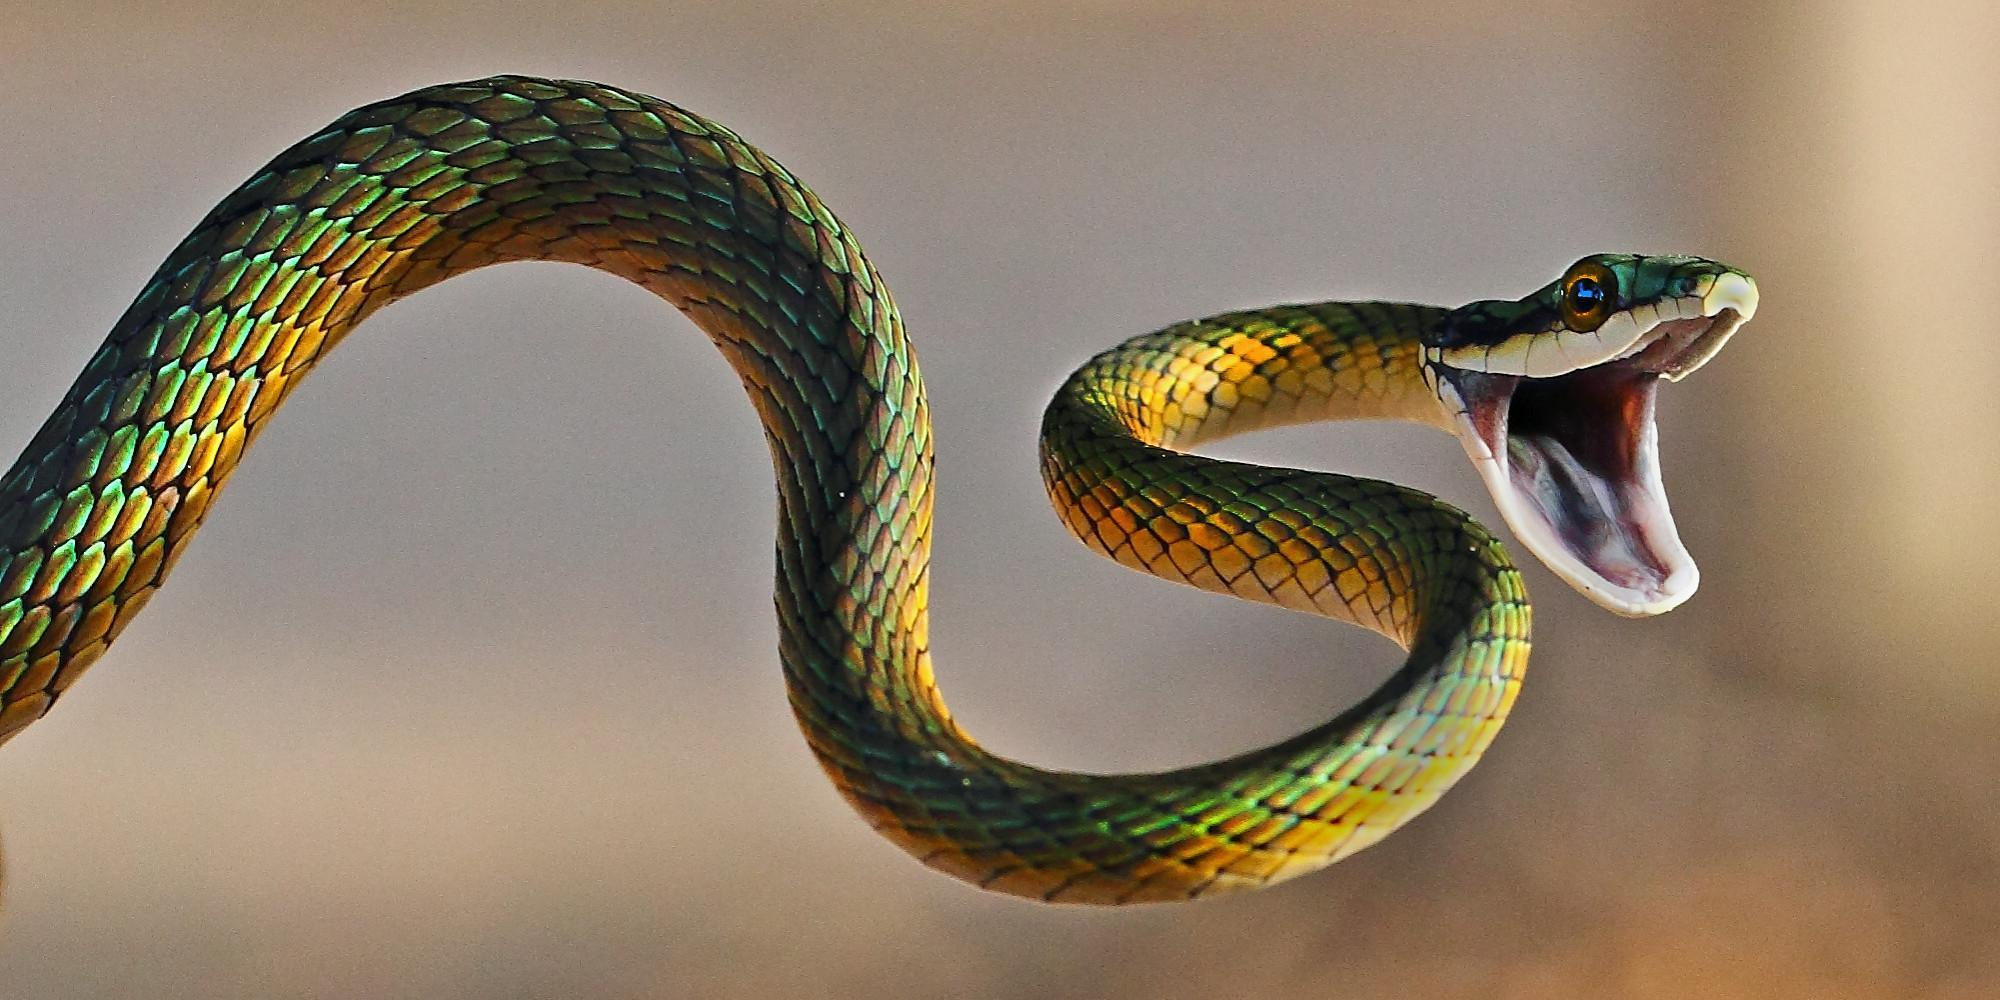 How many species of snakes are venomous?